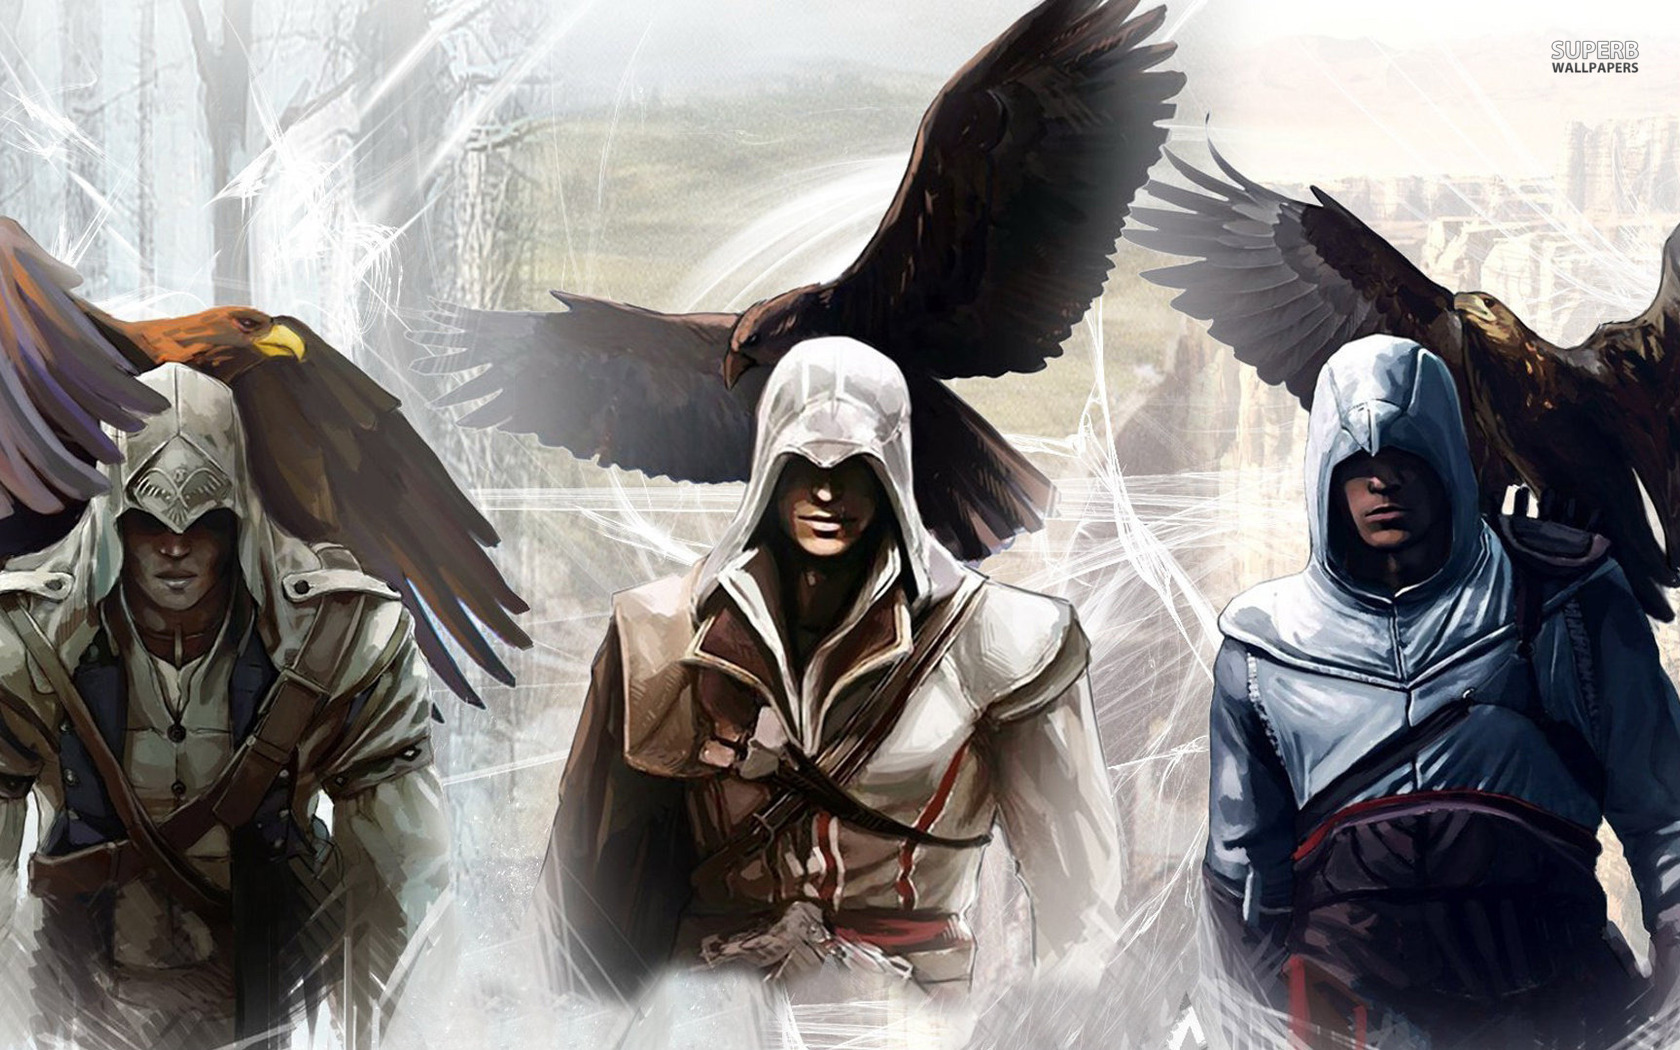 Brotherhood Of The Creed The Assassin S Wallpaper 35951426 Fanpop